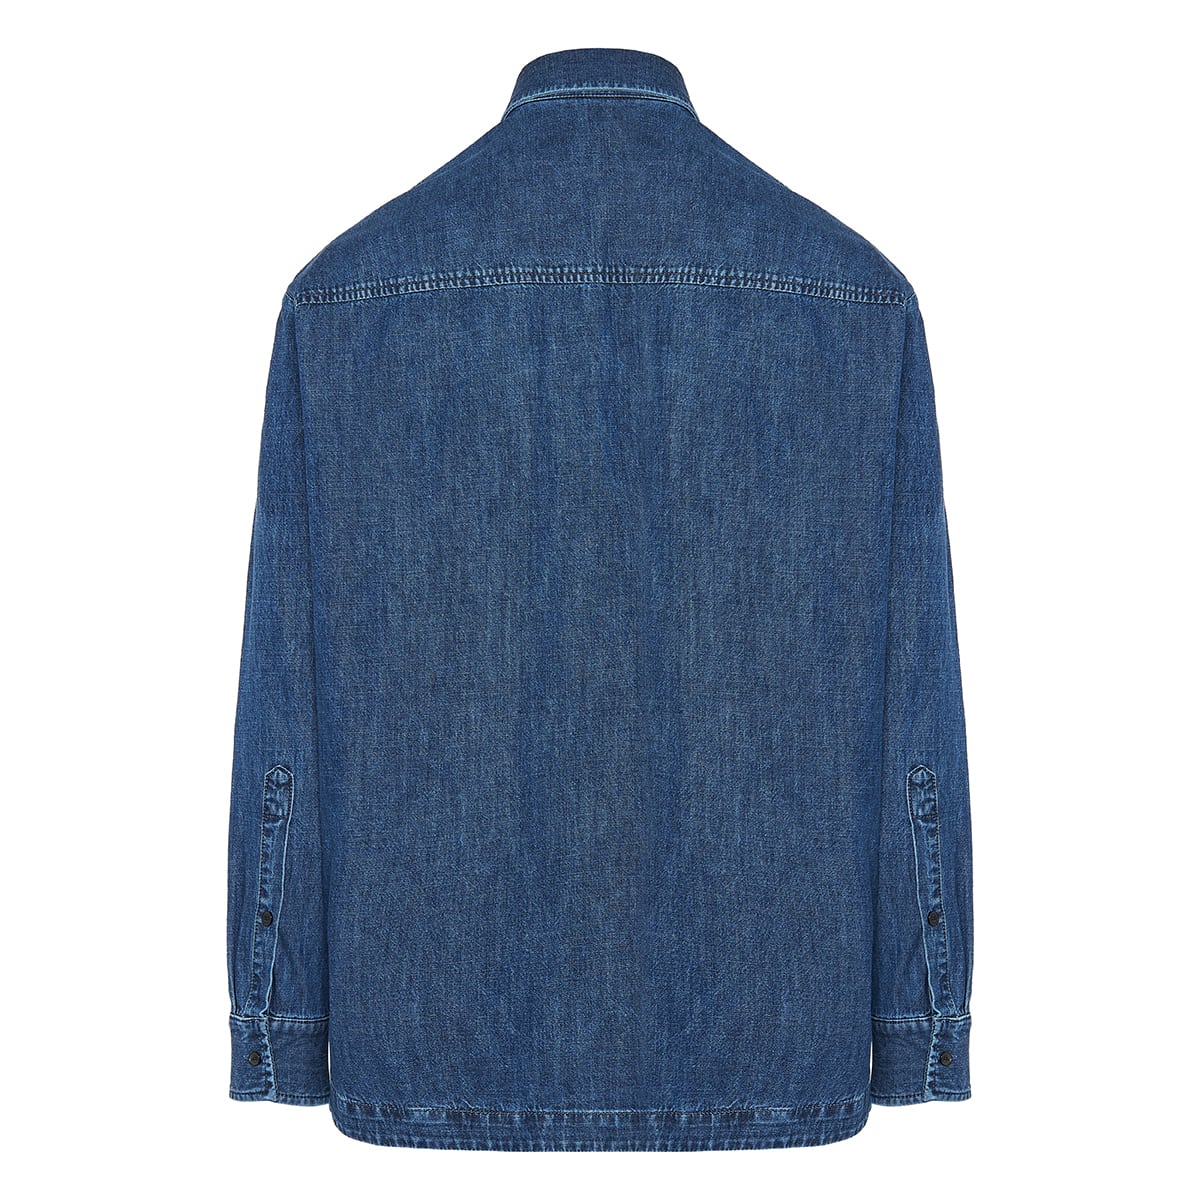 Denim kaftan shirt